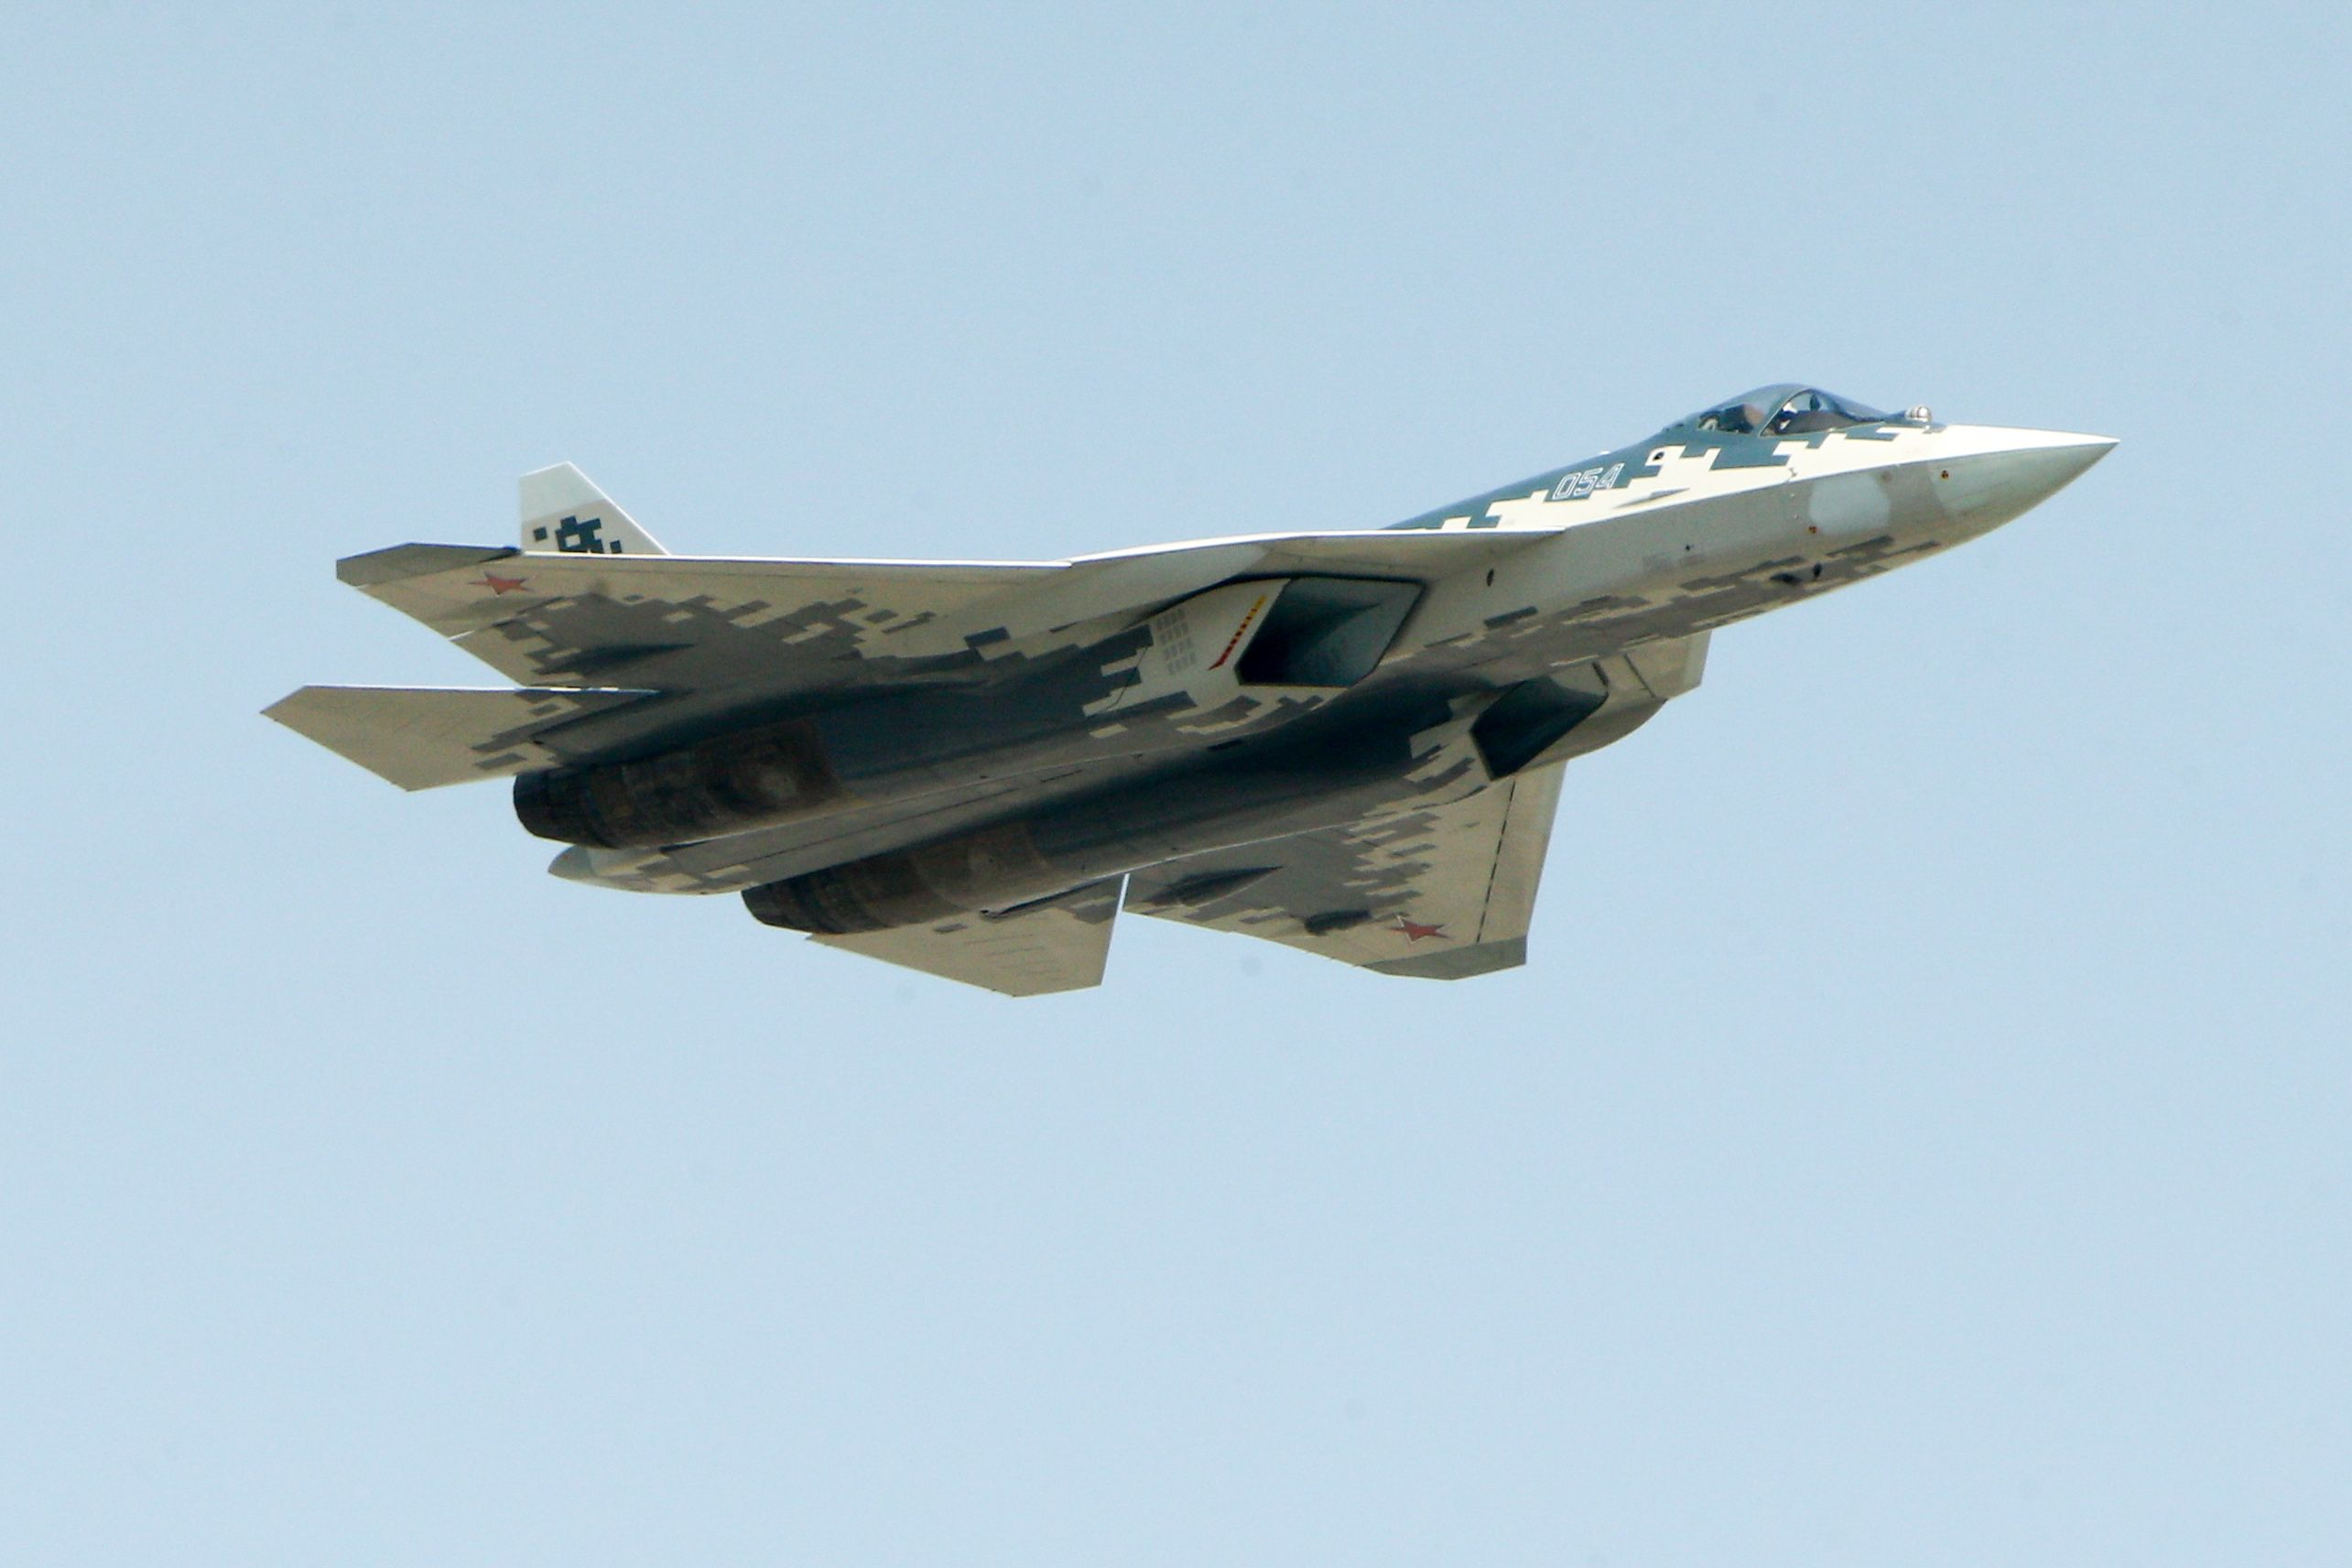 Ten Years Later, Russia Finally Begins Production of the Su-57 Stealth Fighter